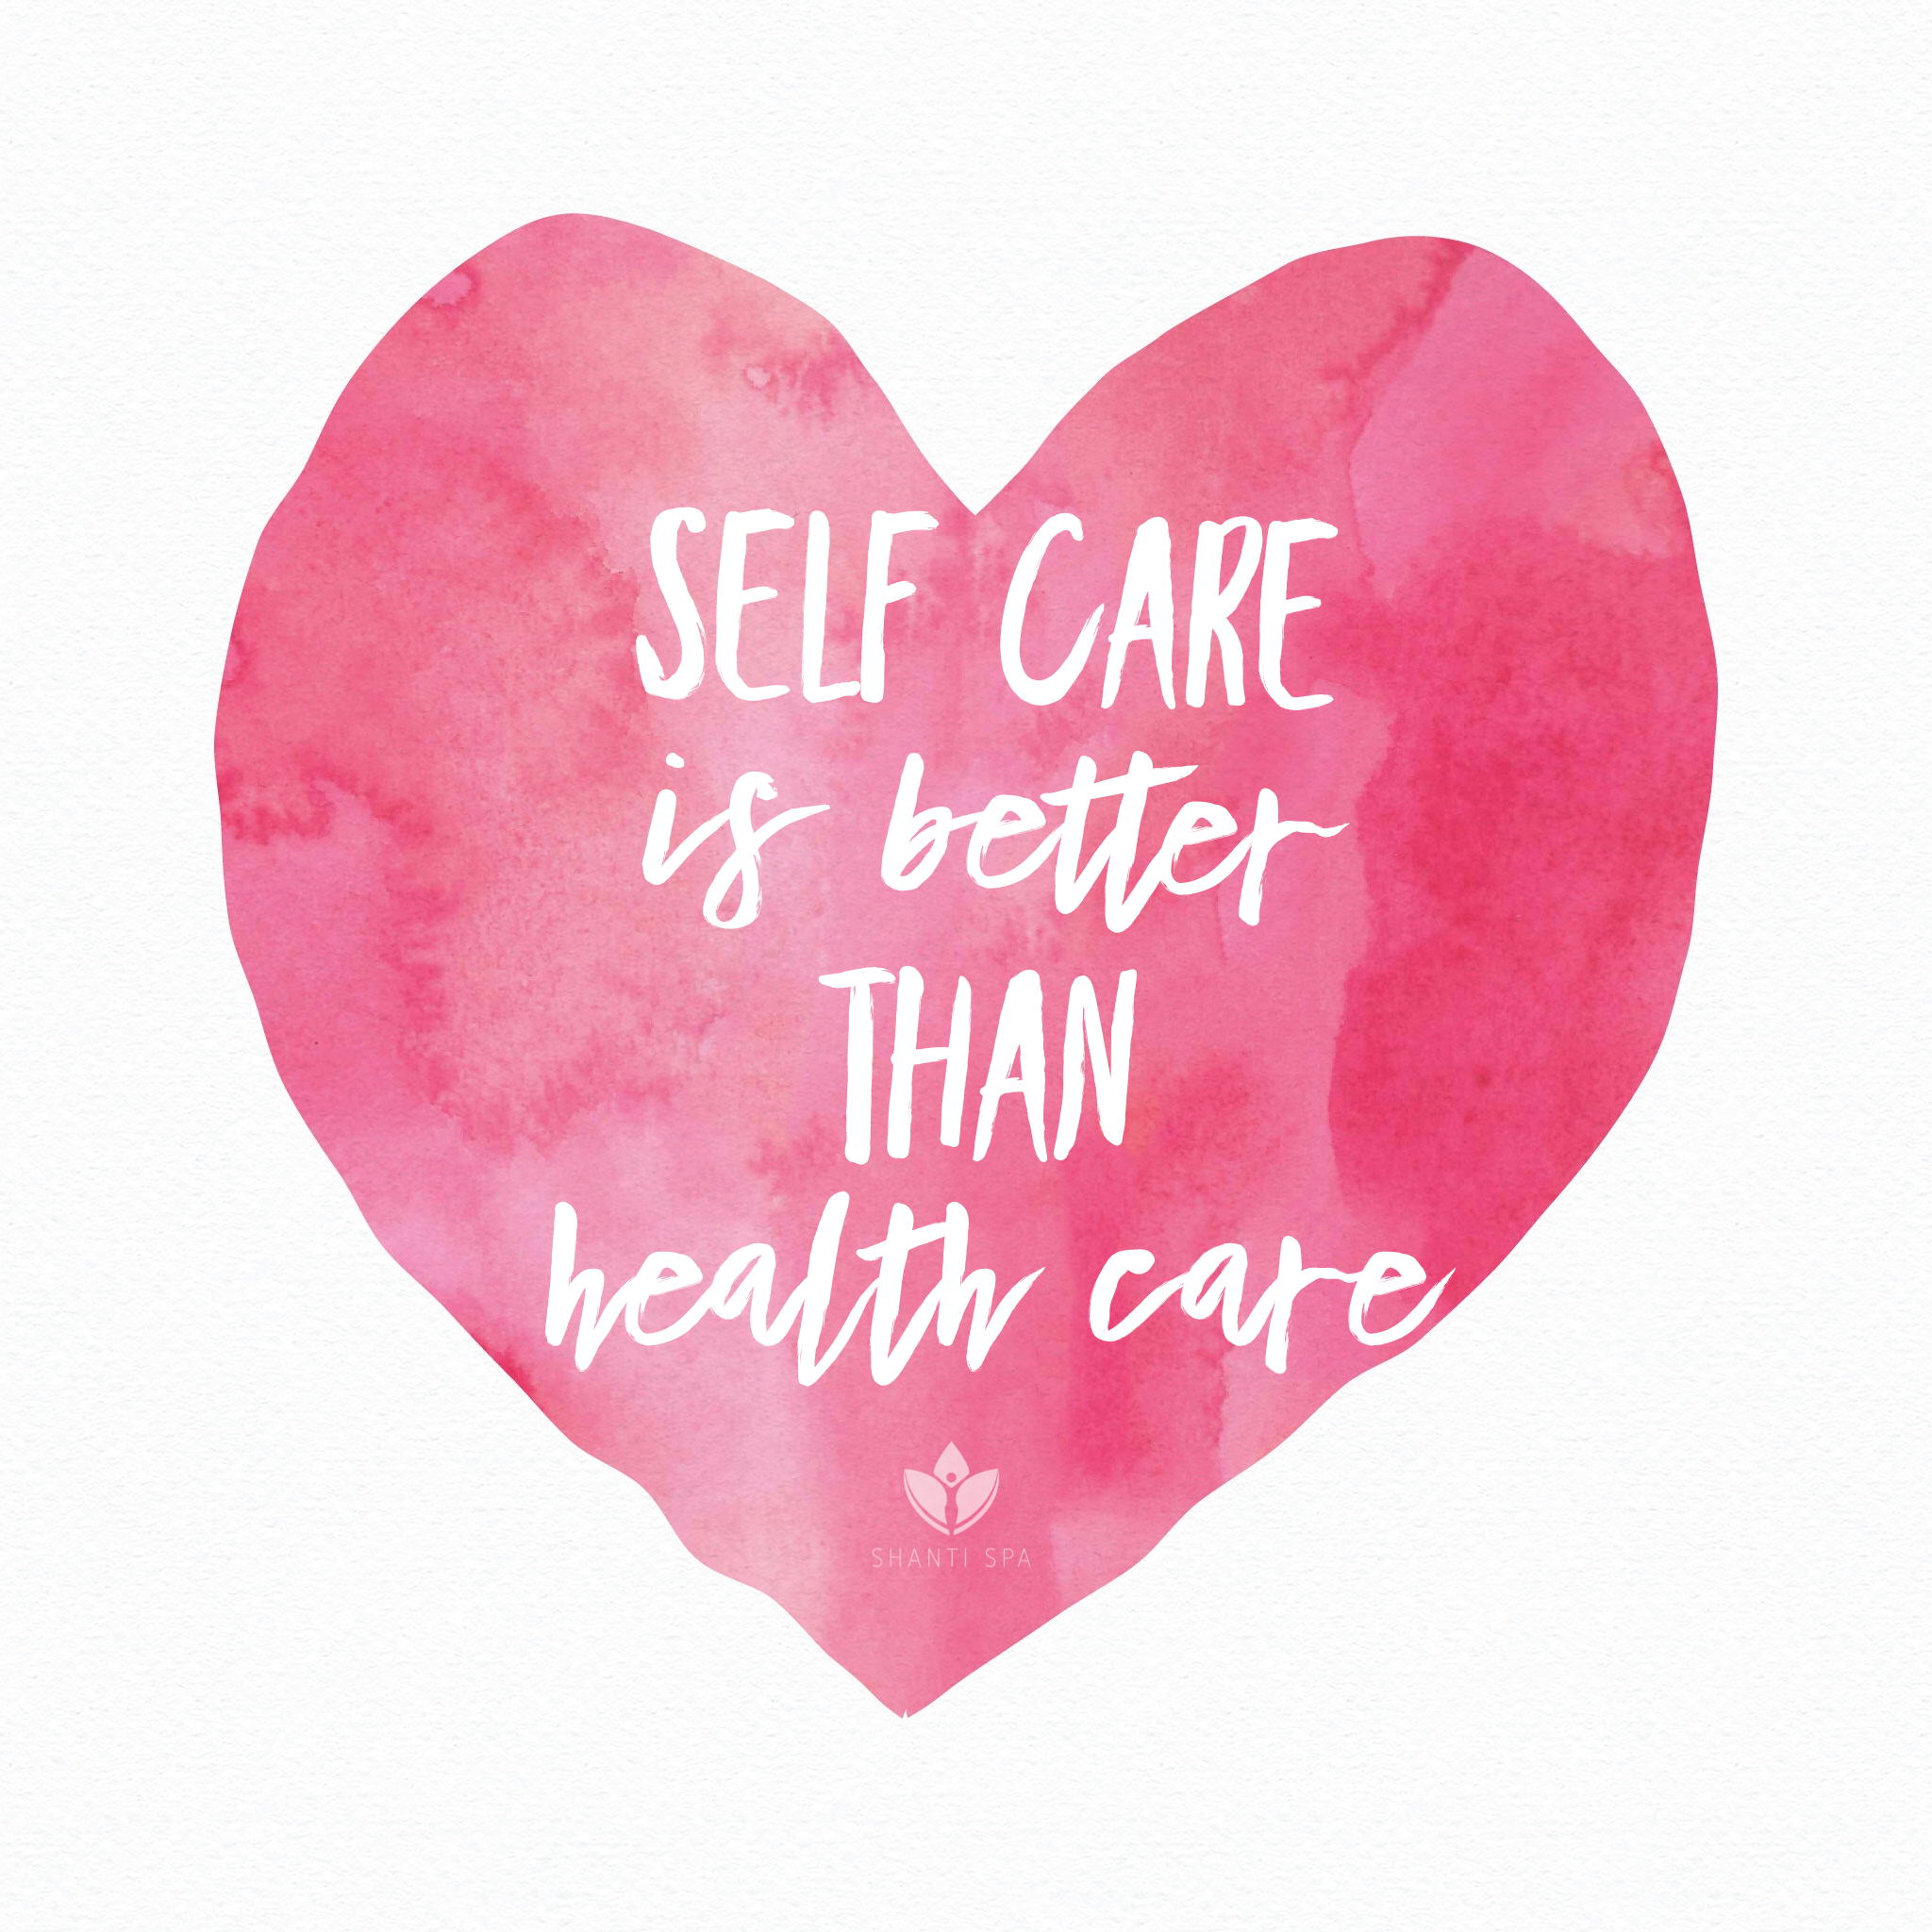 5 Quick and Easy Self Care Activities